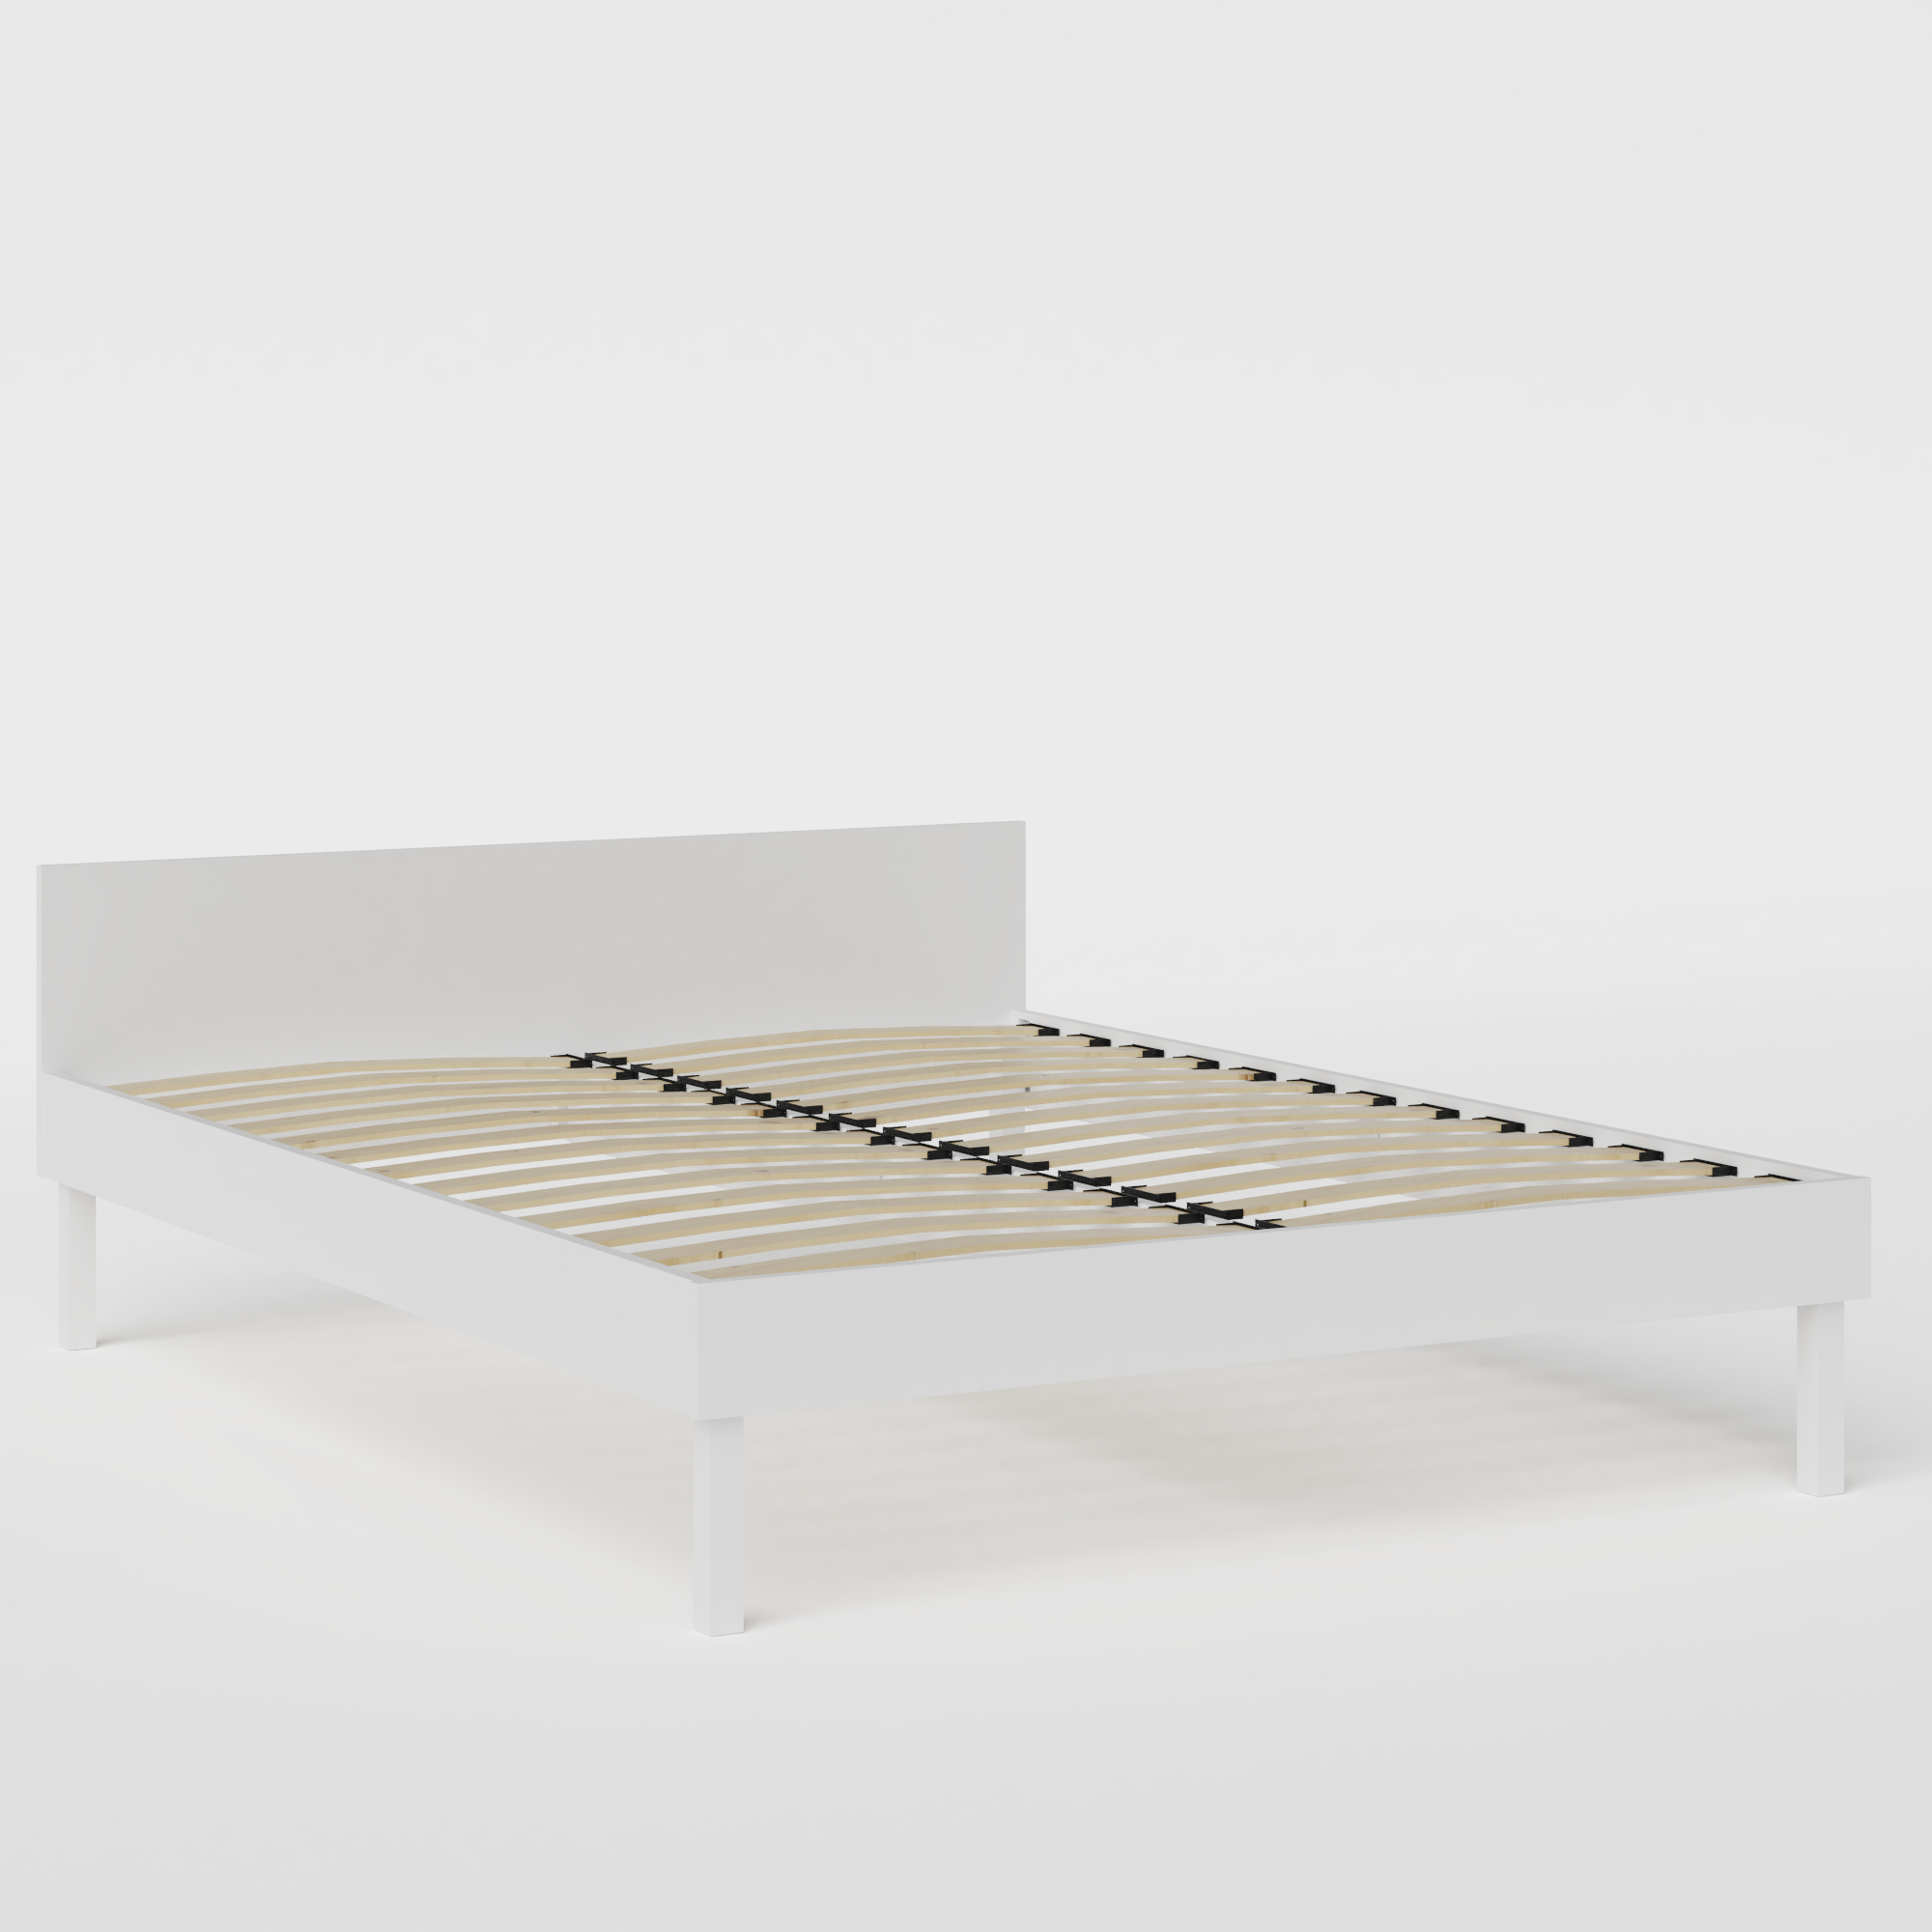 Fuji Painted painted wood bed in white